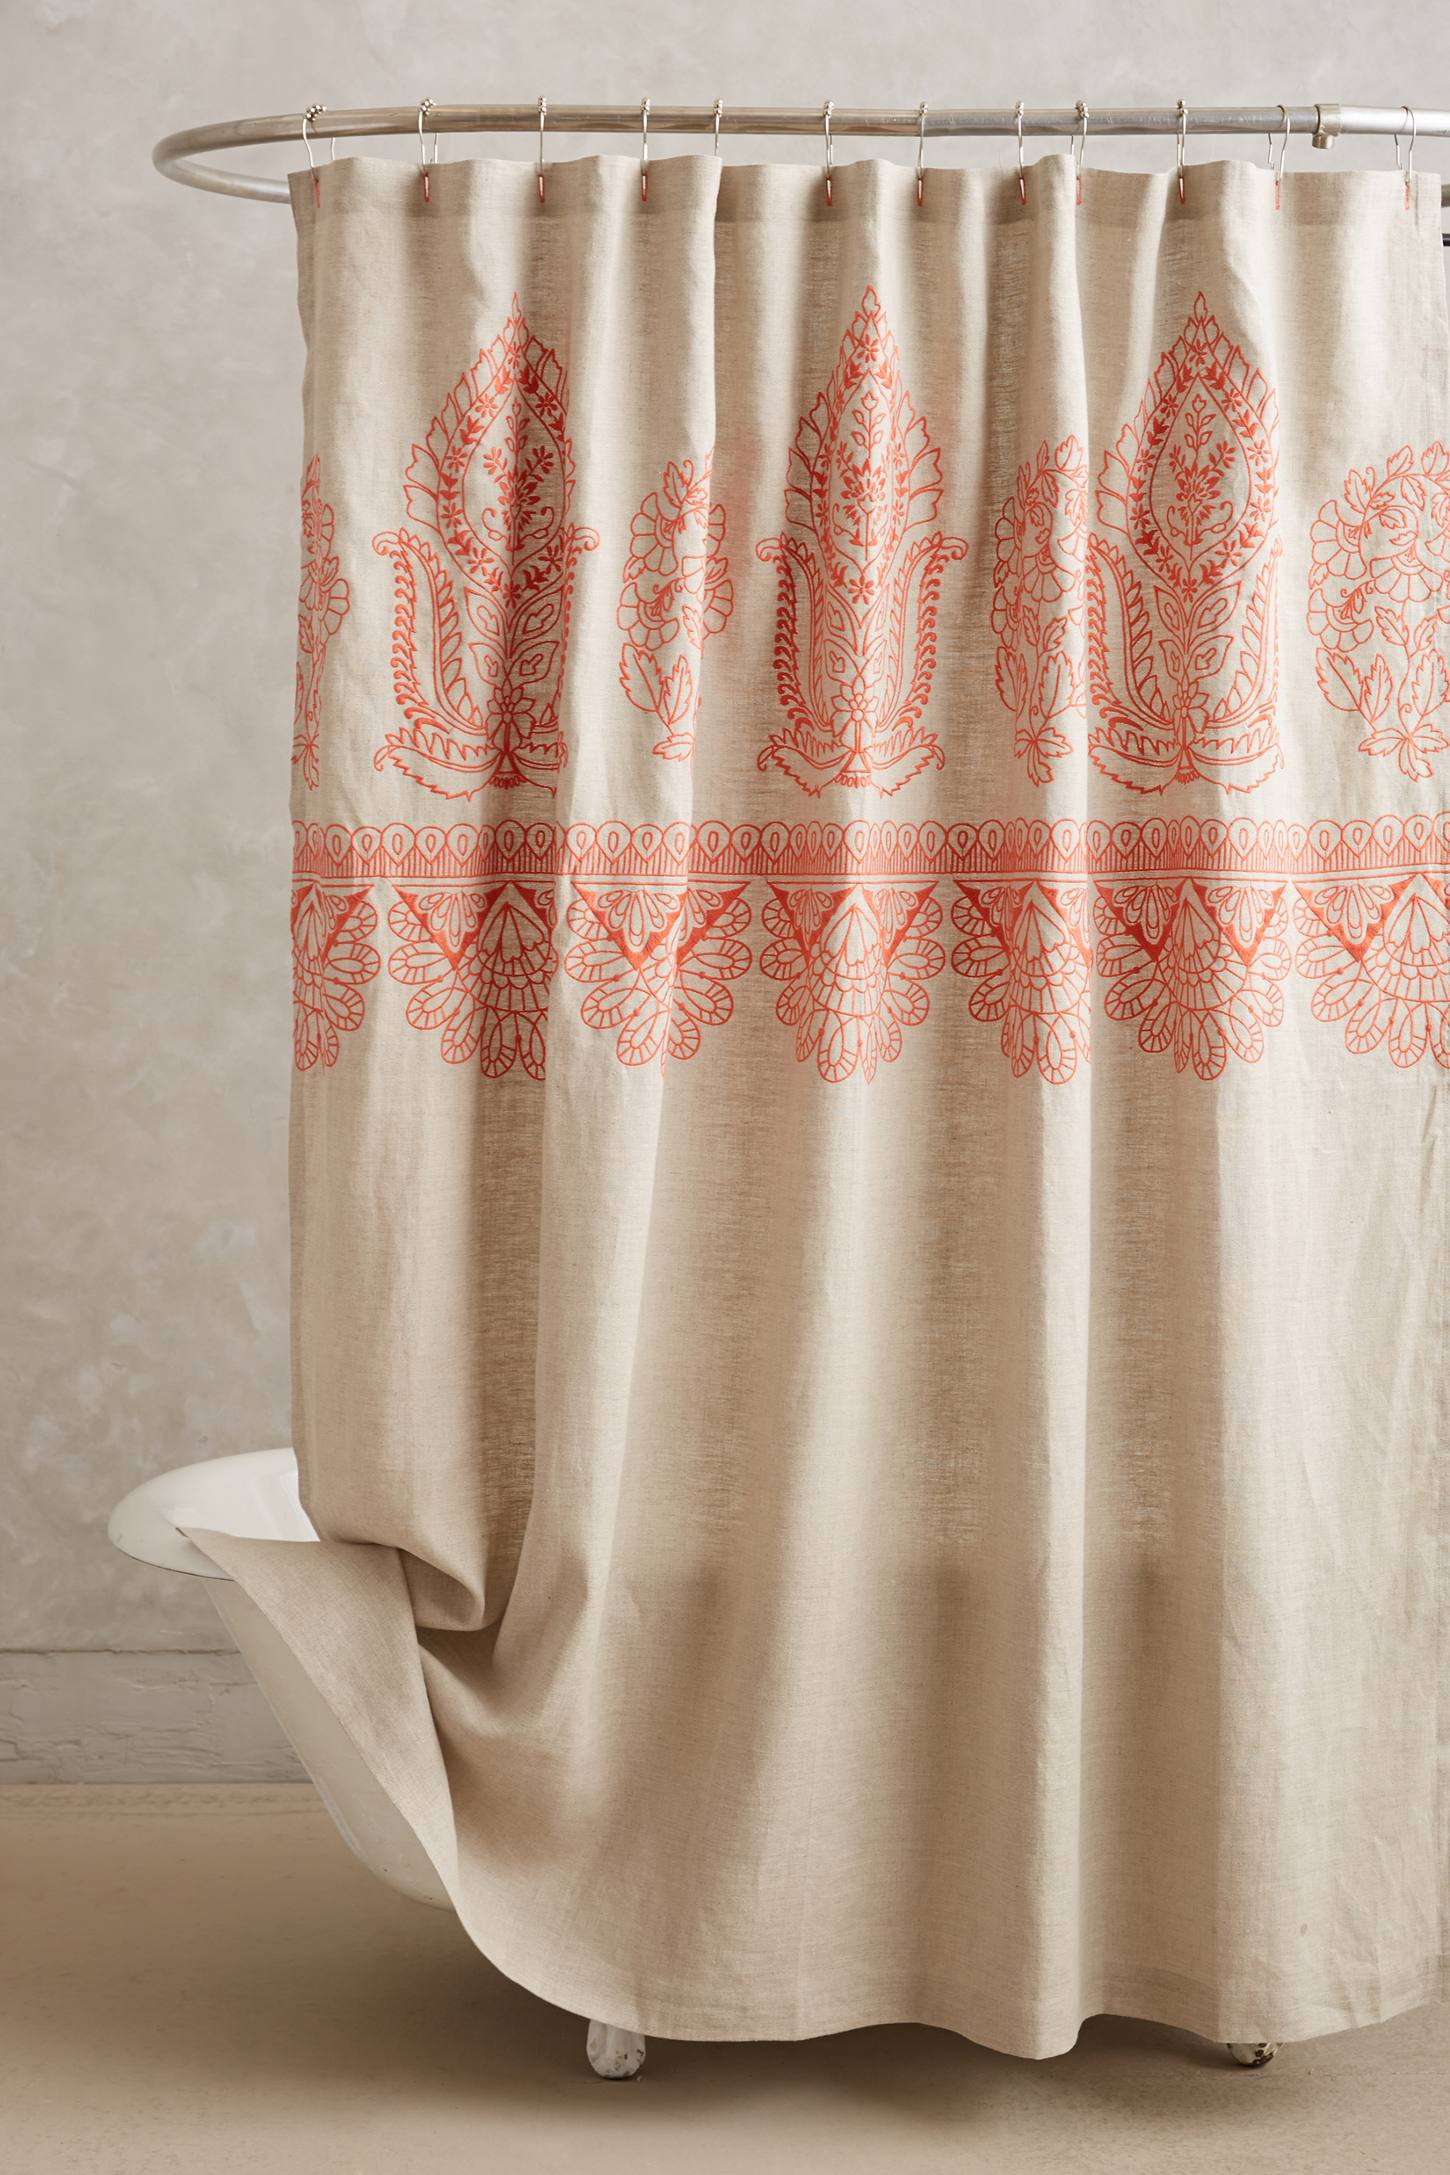 vintage shower curtains top 20 shower curtains decoholic 29059